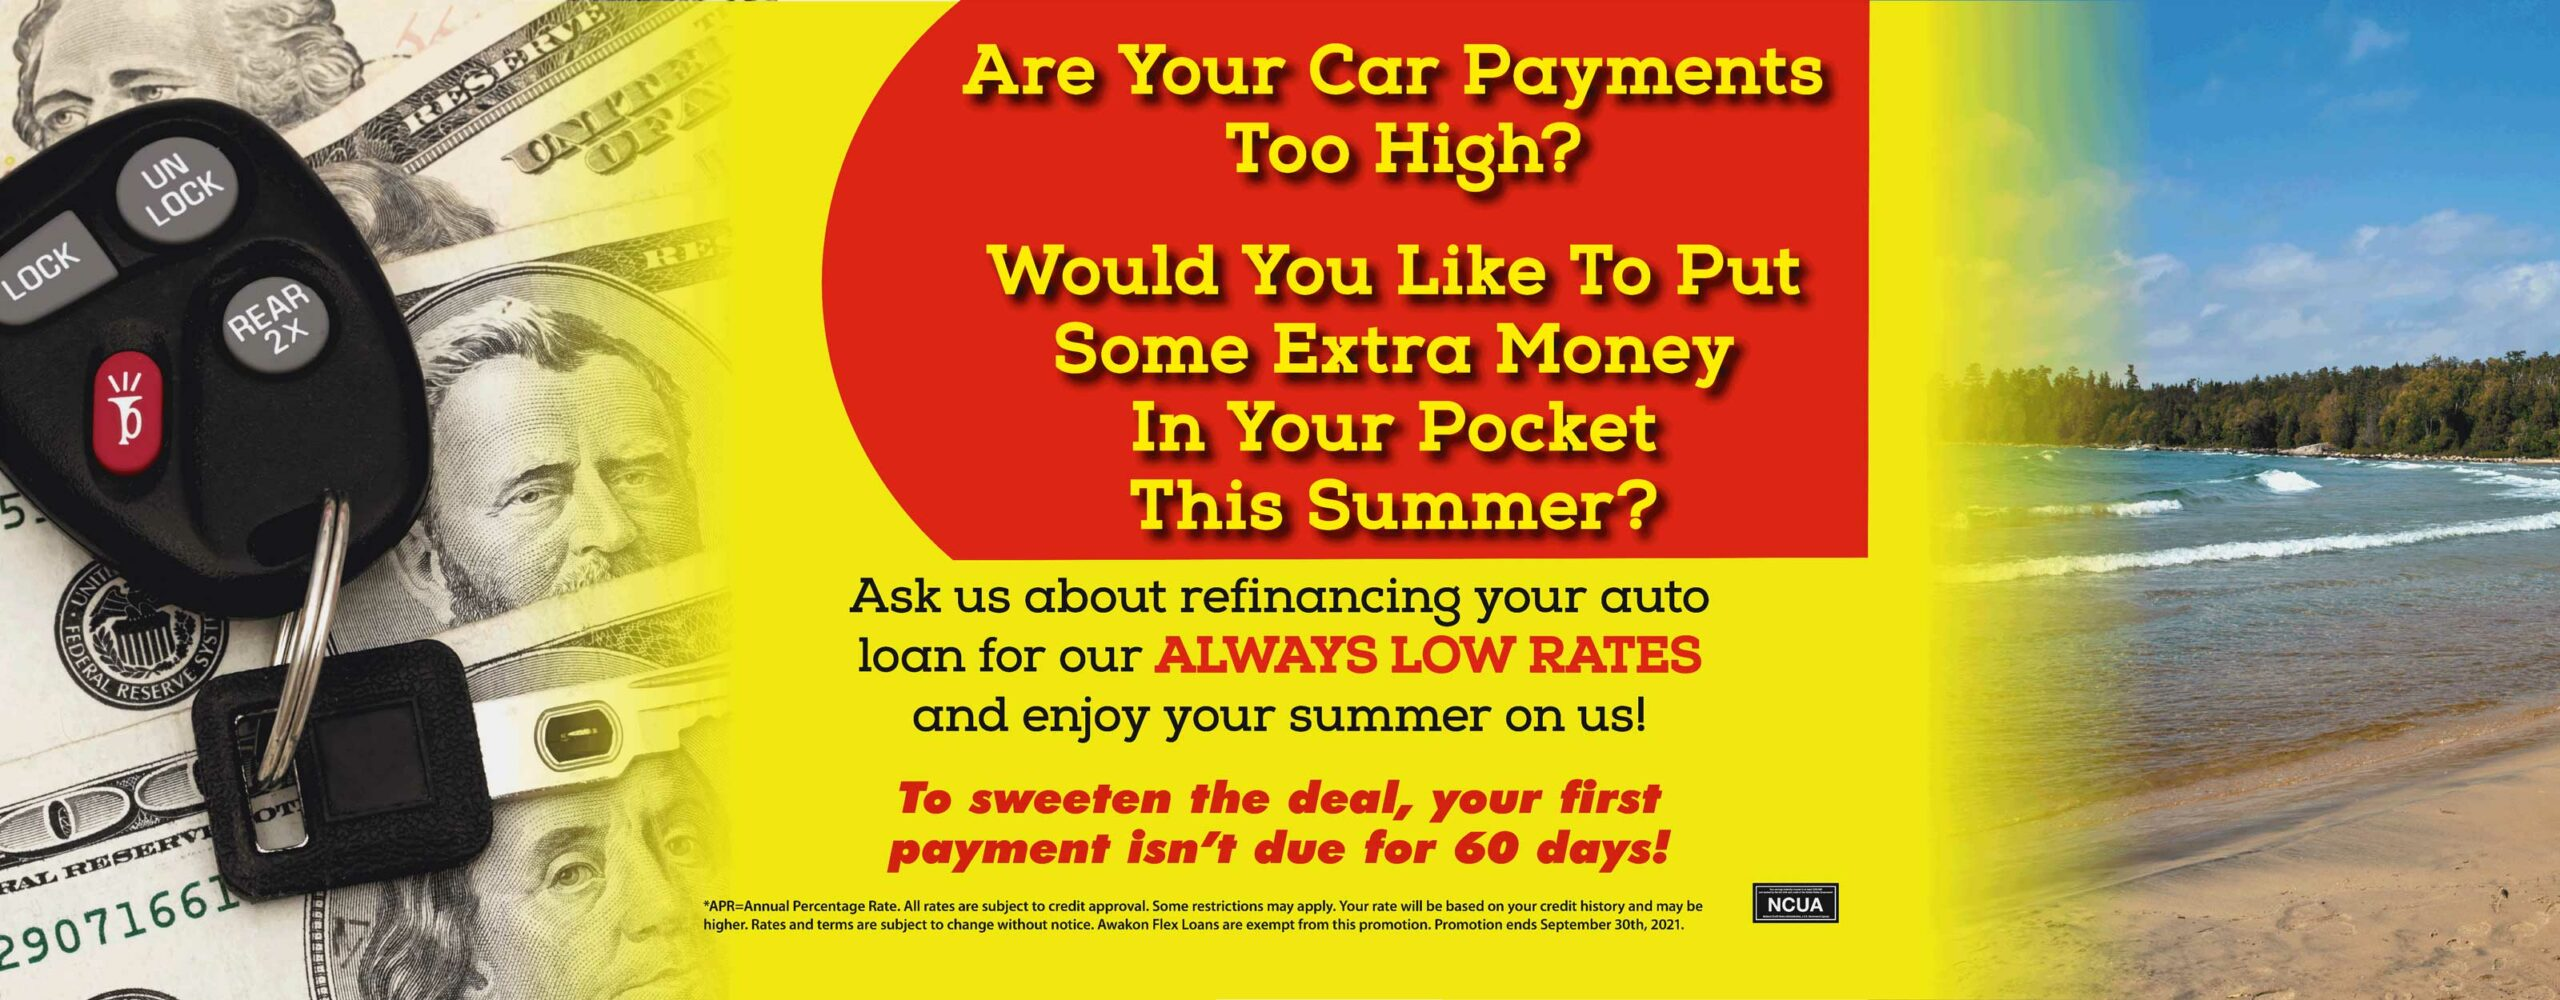 Ask us about refinancing your auto!